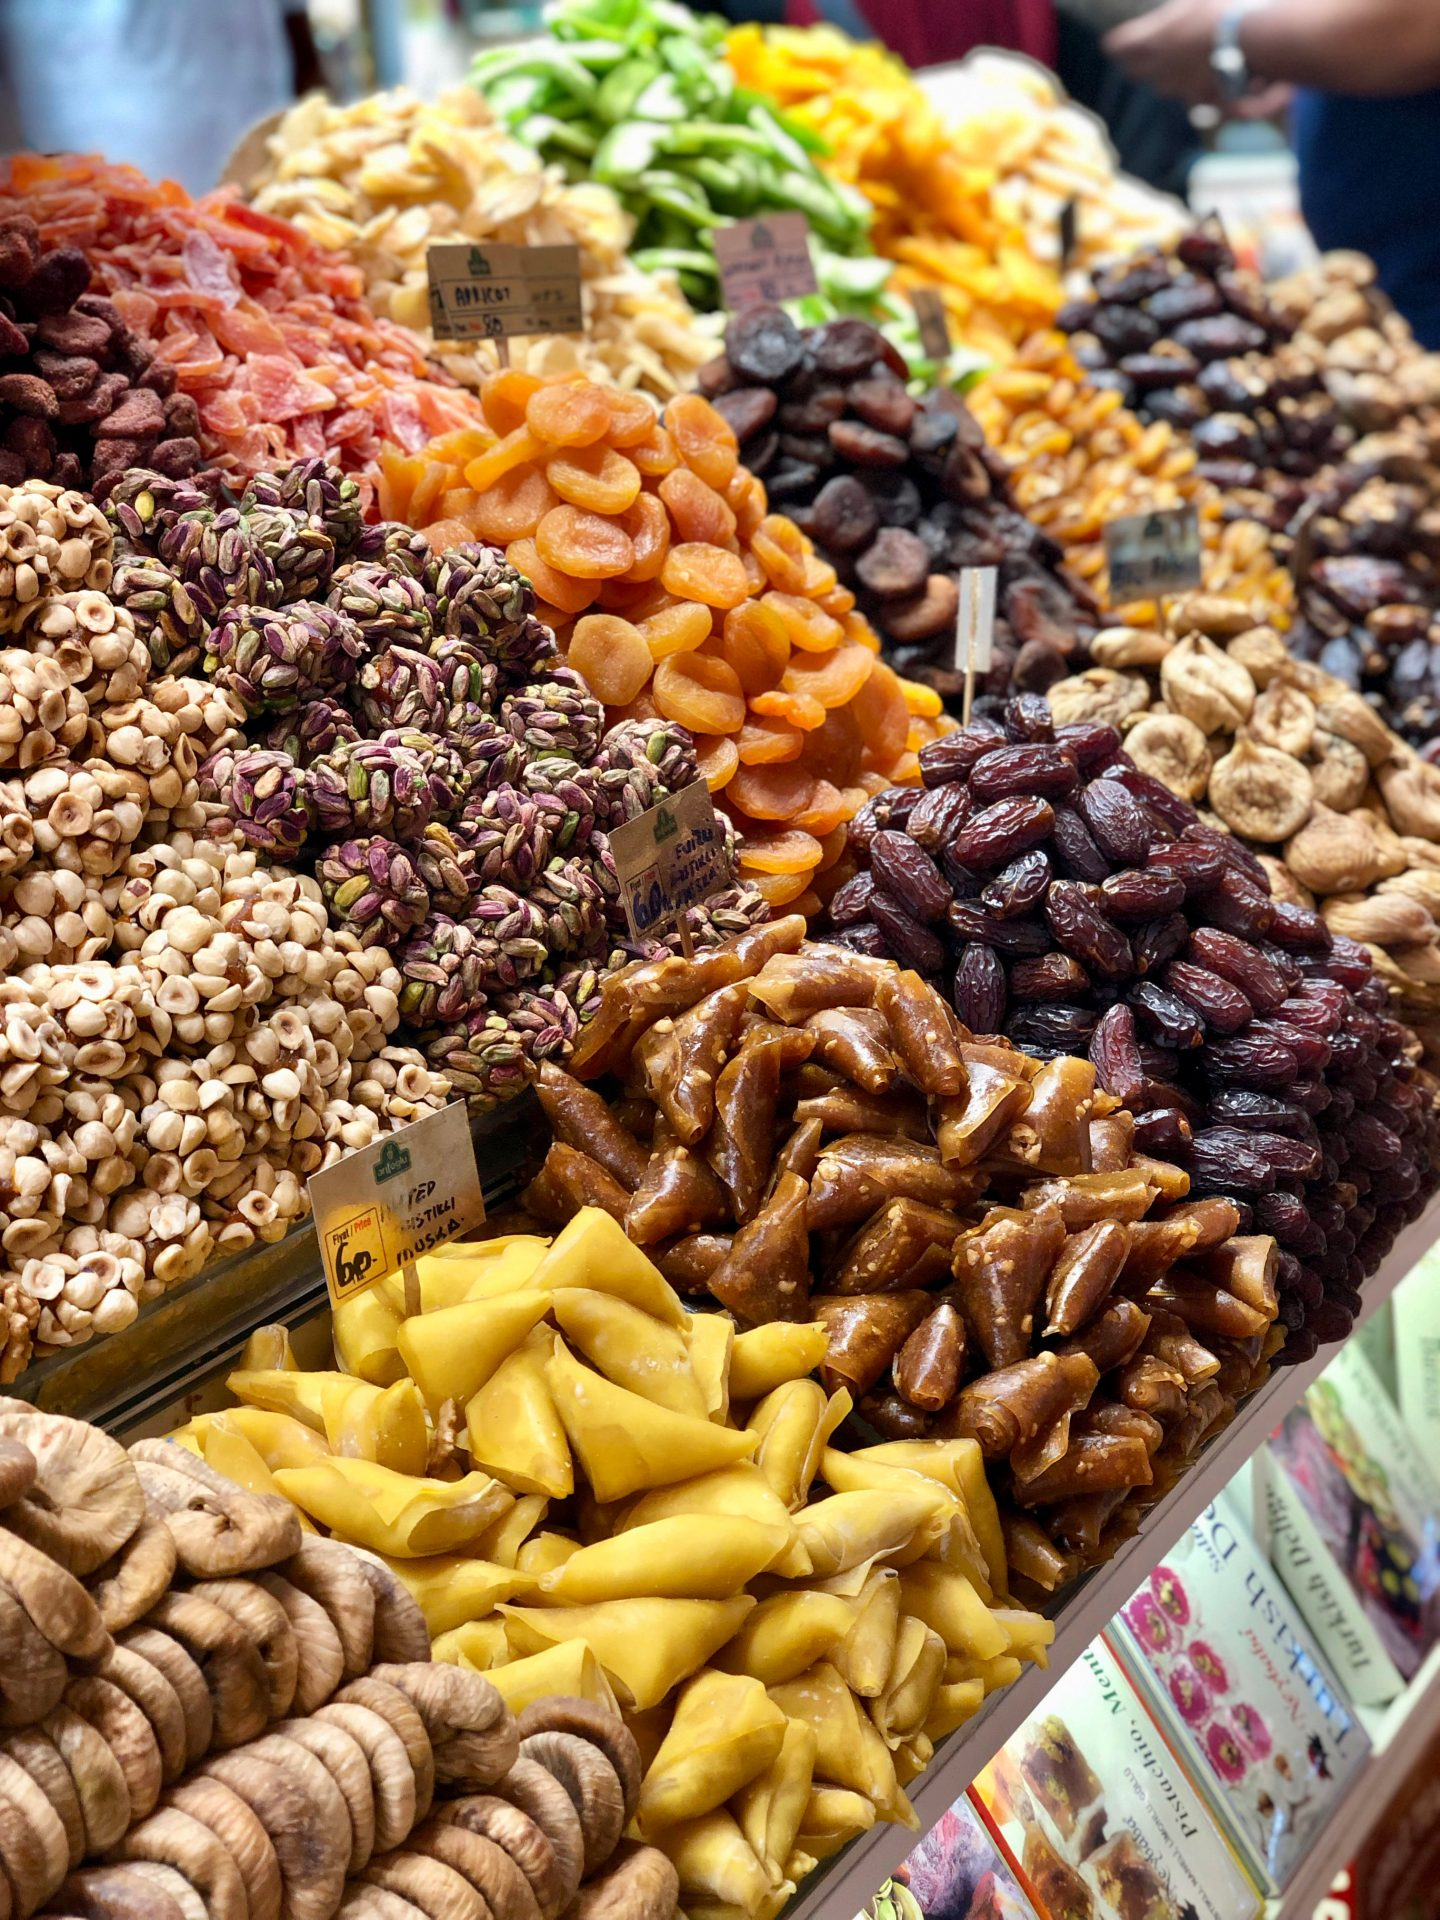 48 hours weekend in Istanbul: dried fruits in the spice market